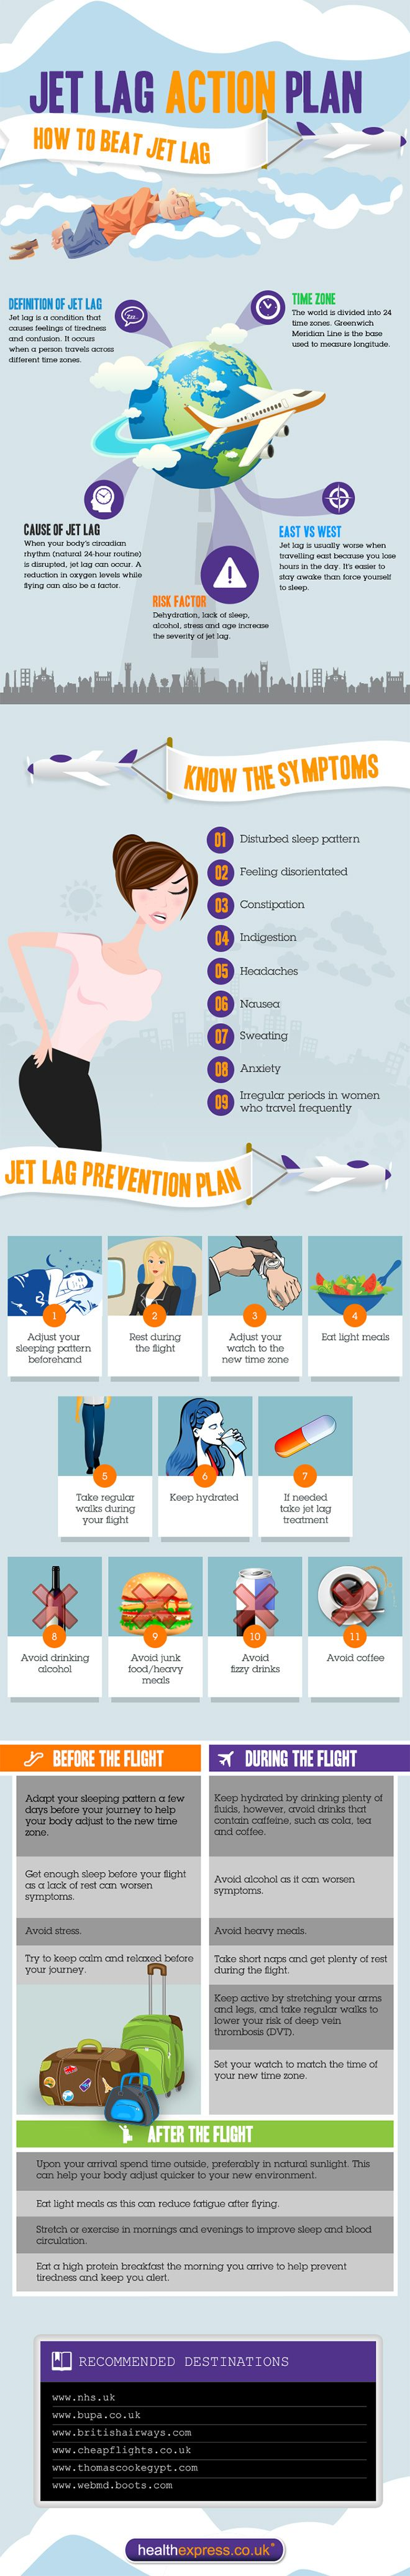 Jet Lag Action Plan: How to Beat Jet Lag [INFOGRAPHIC]